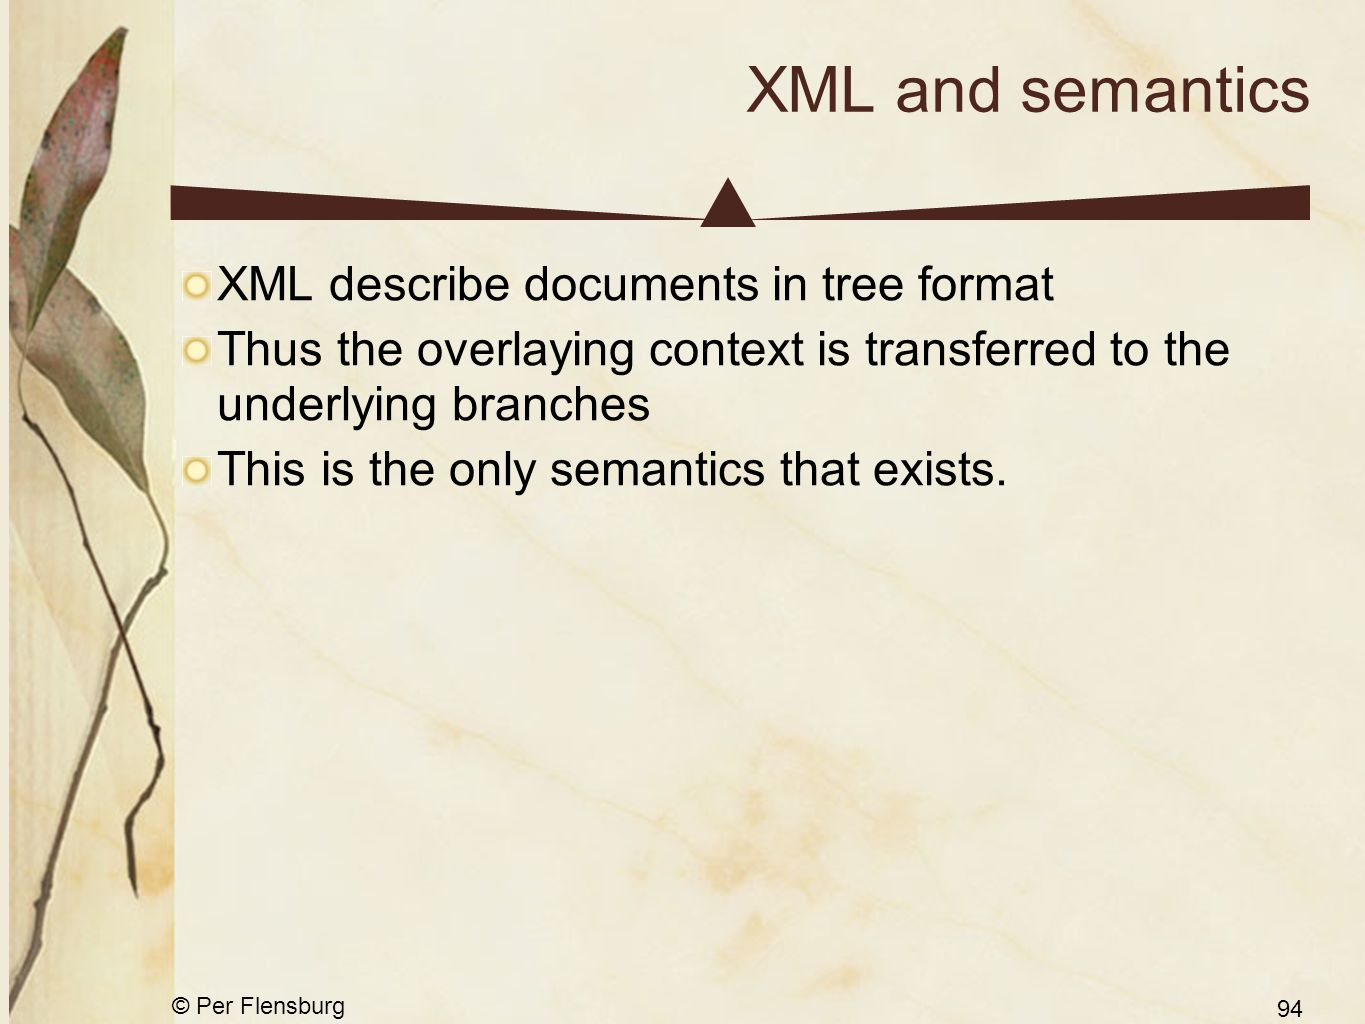 © Per Flensburg 94 XML and semantics XML describe documents in tree format Thus the overlaying context is transferred to the underlying branches This is the only semantics that exists.